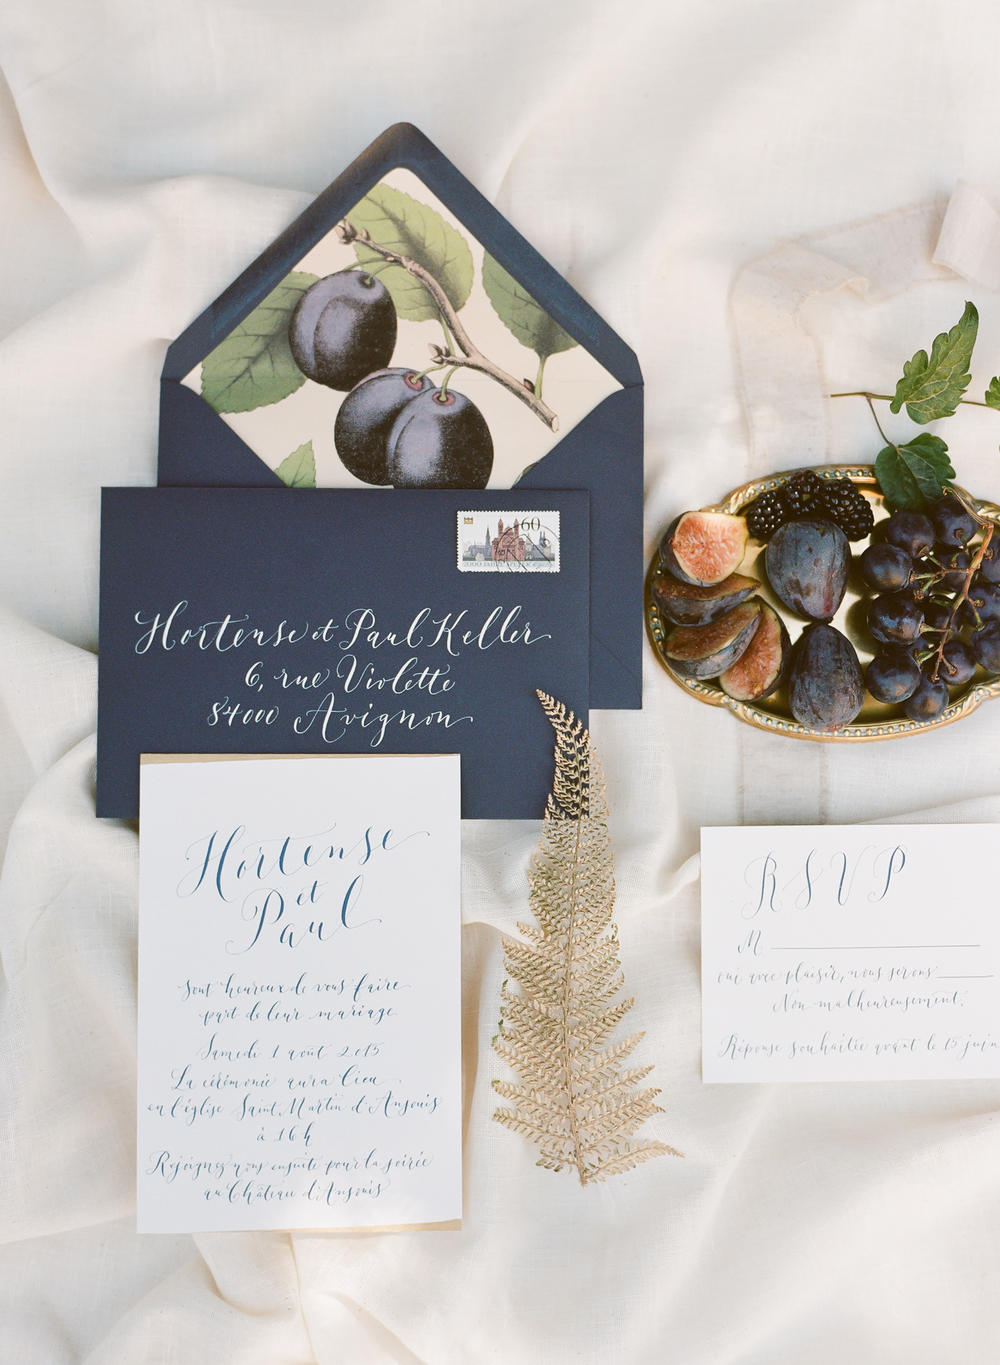 A gorgeous invitation suite featuring a navy and gold theme designed by Little Miss Press